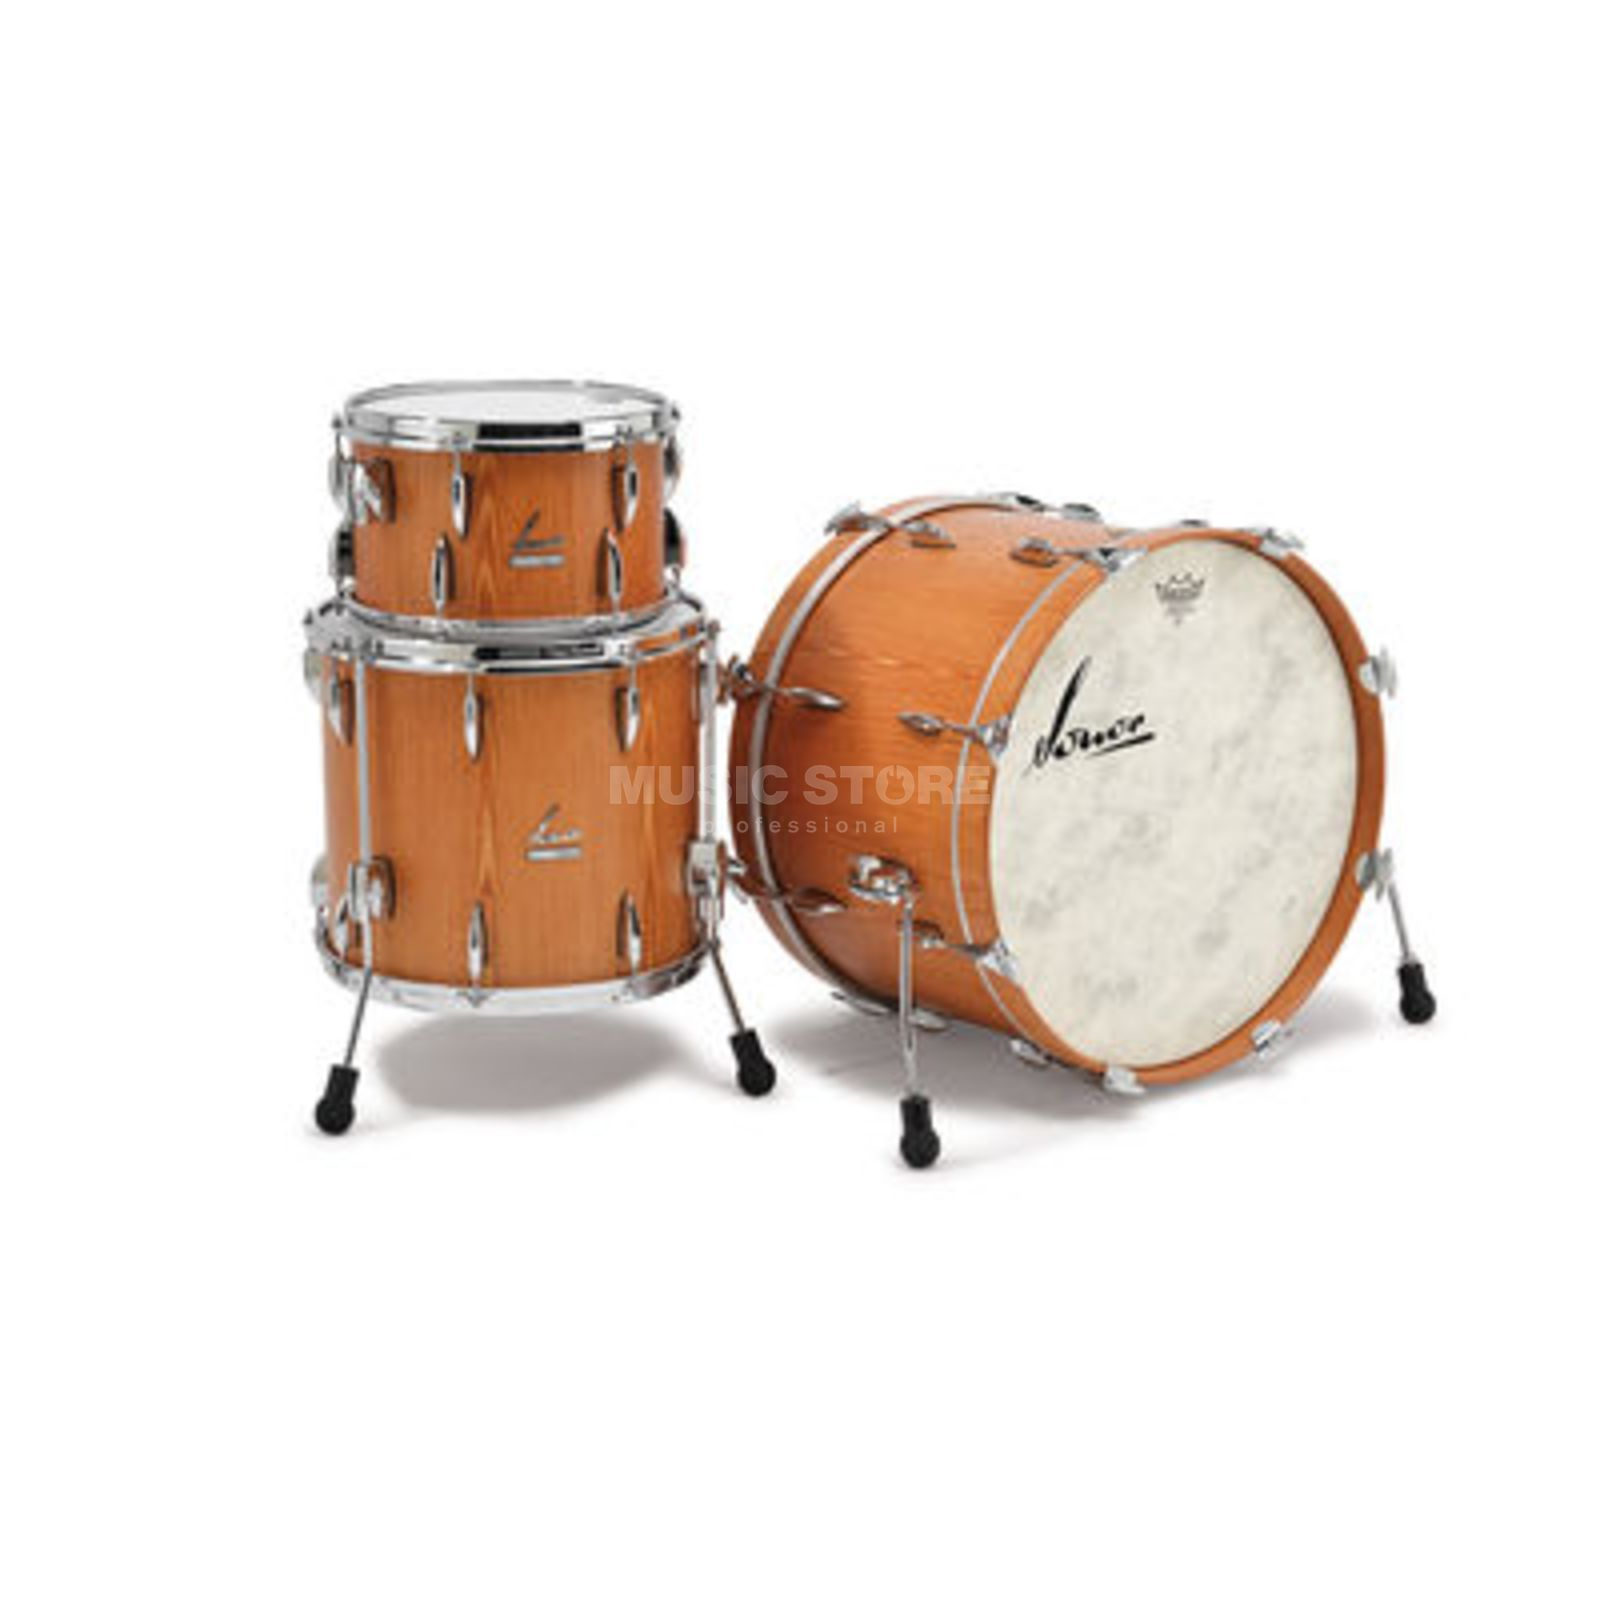 Sonor Vintage Series Three22, Vintage Natural, w/o mount Produktbild